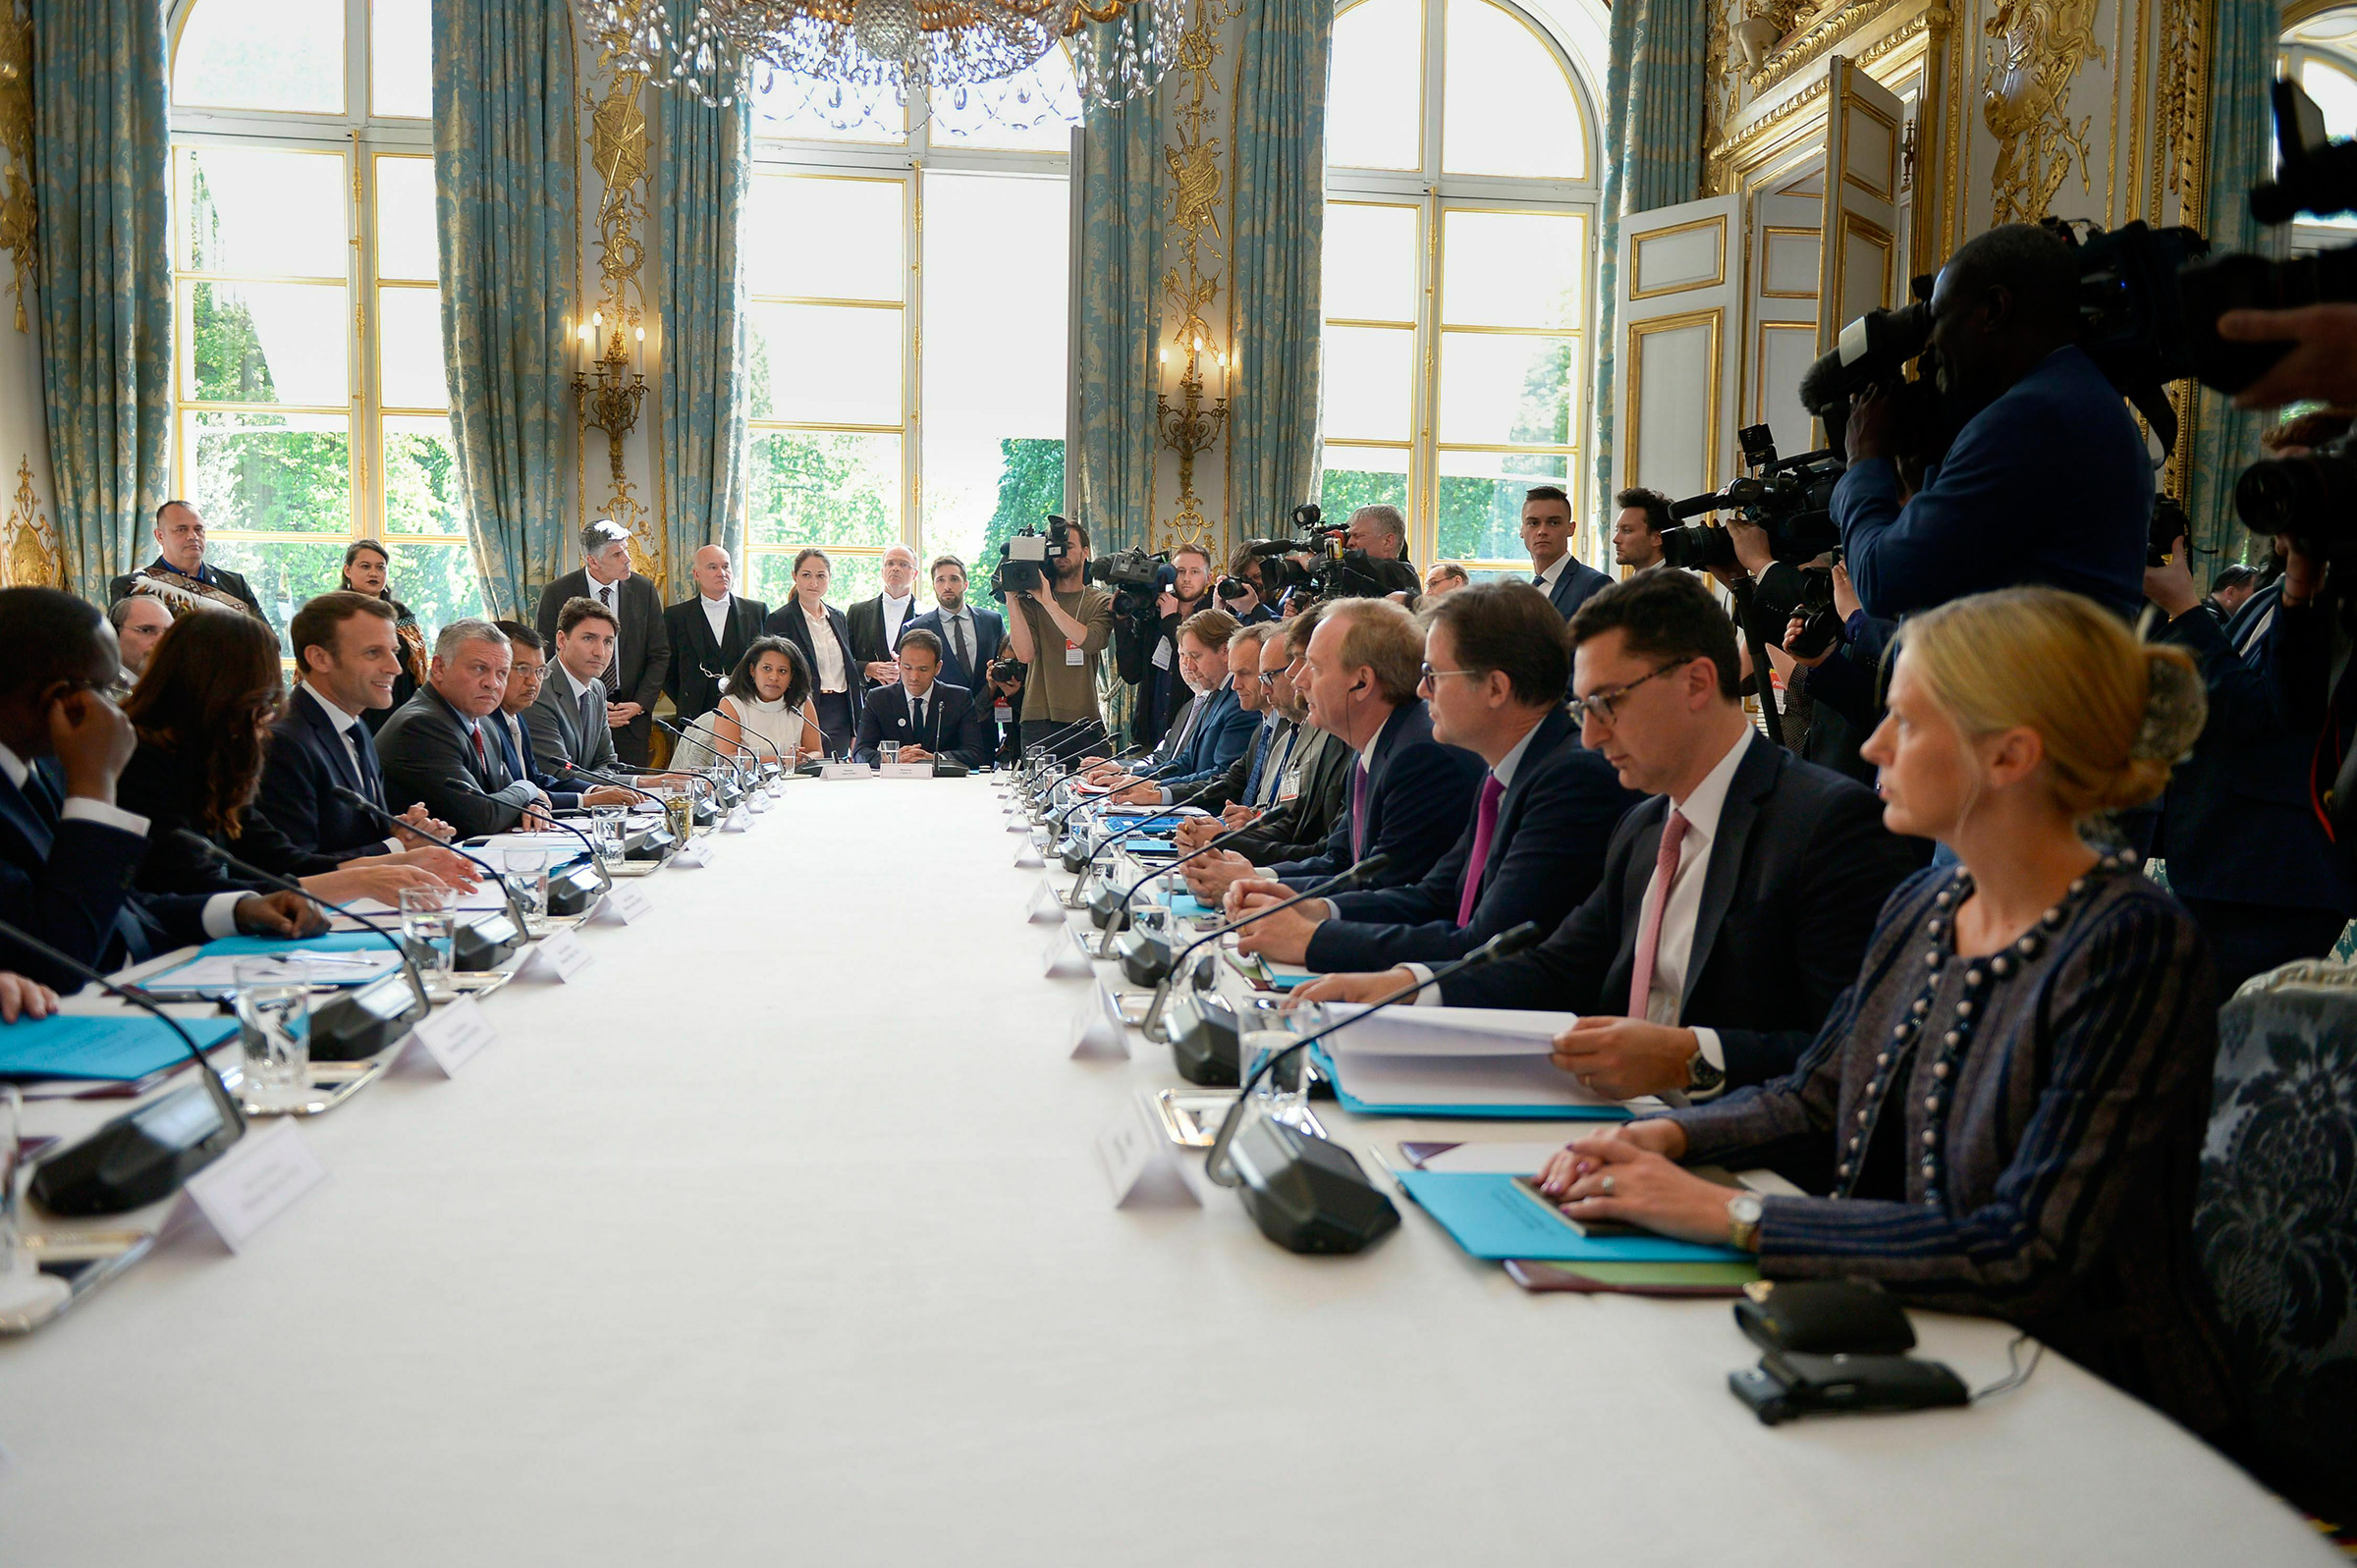 Smith, fourth from bottom right, at a Tech for Good summit with world leaders and top business executives, hosted by French President Emmanuel Macron at the Élysée Palace on May 15